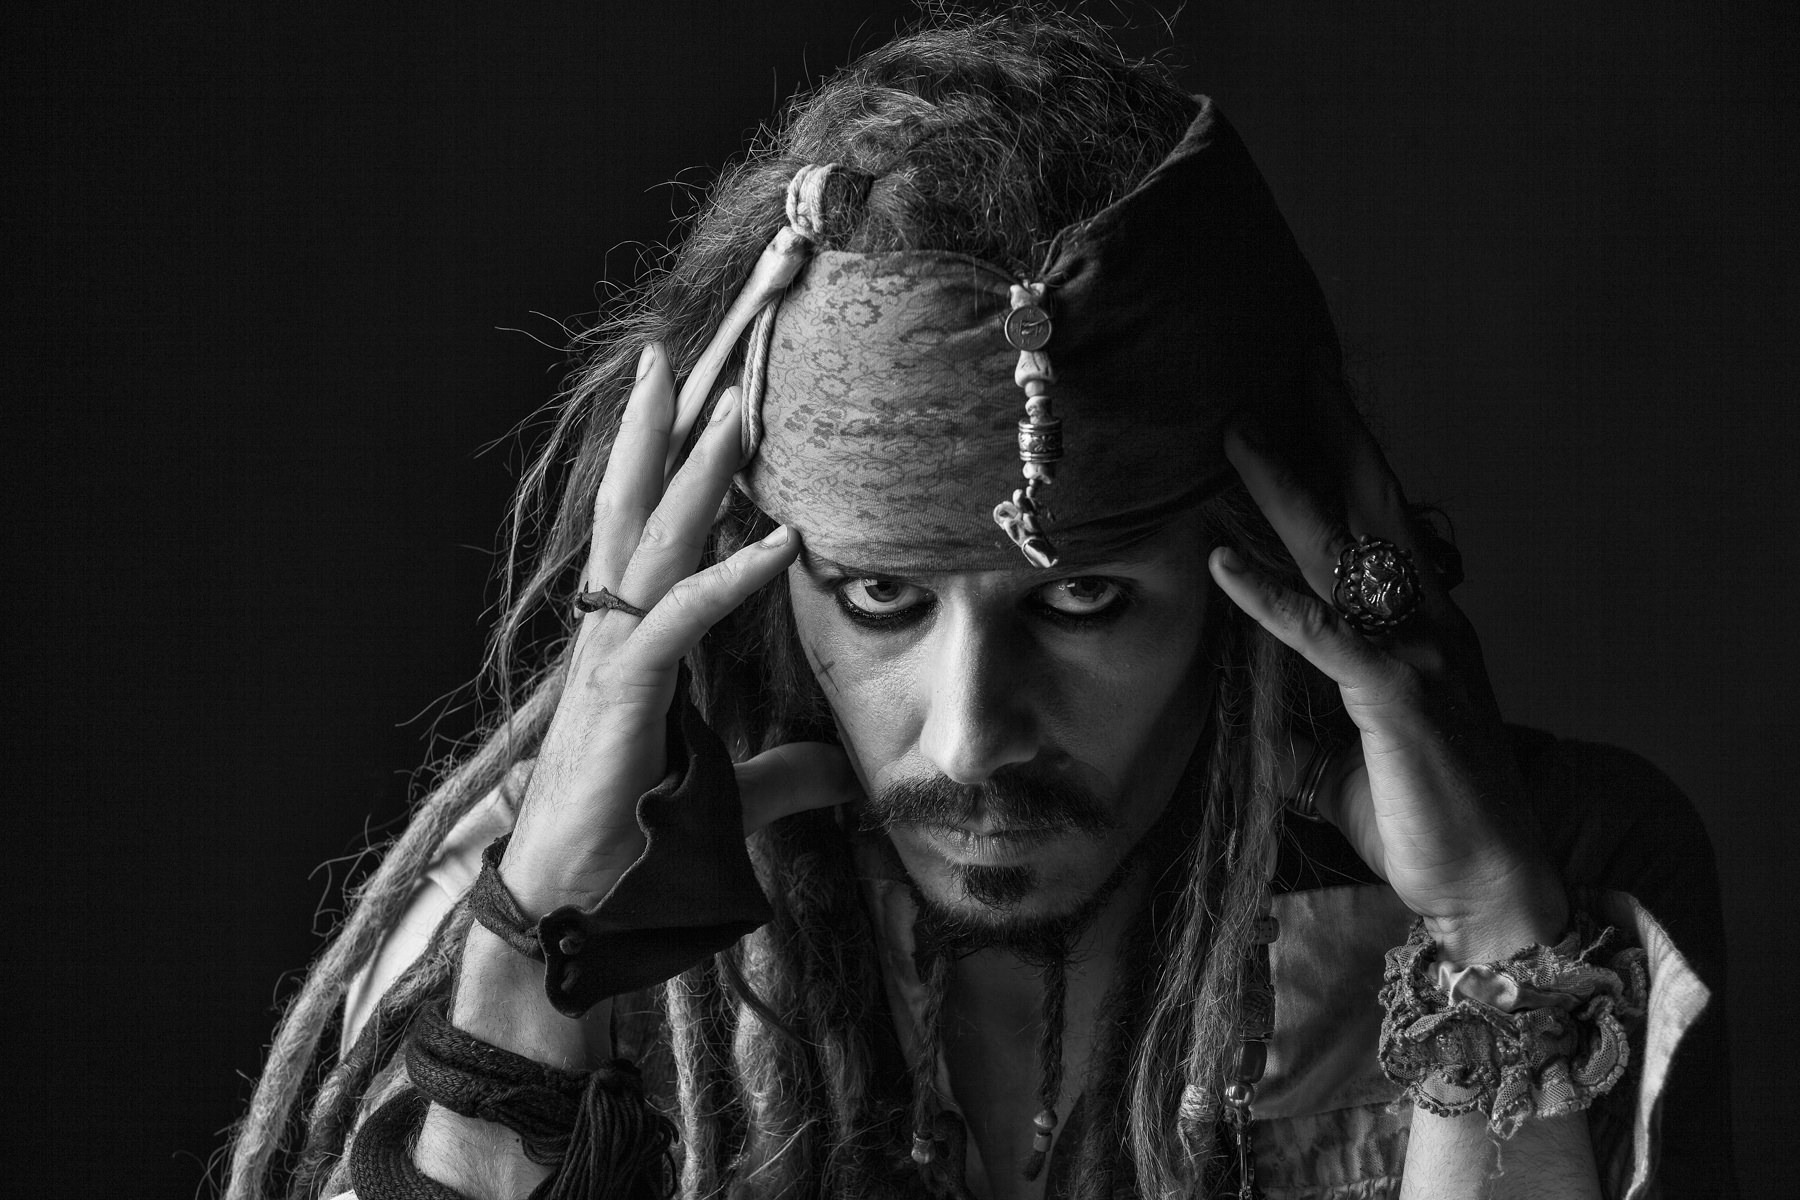 Black and White shot of Jack Sparrow